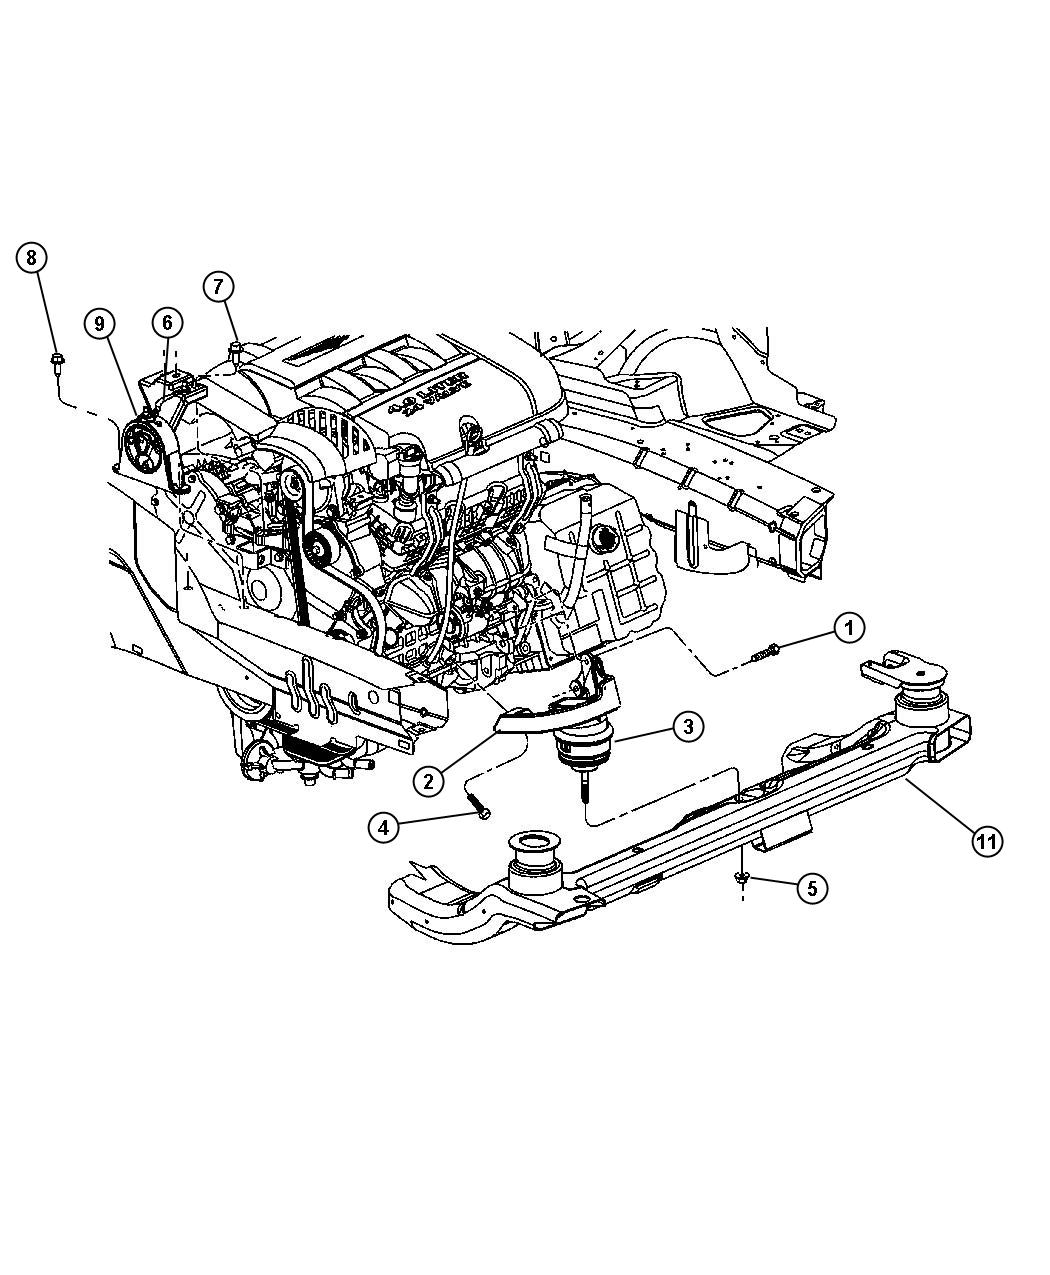 Chrysler Pacifica Engine Mount Location